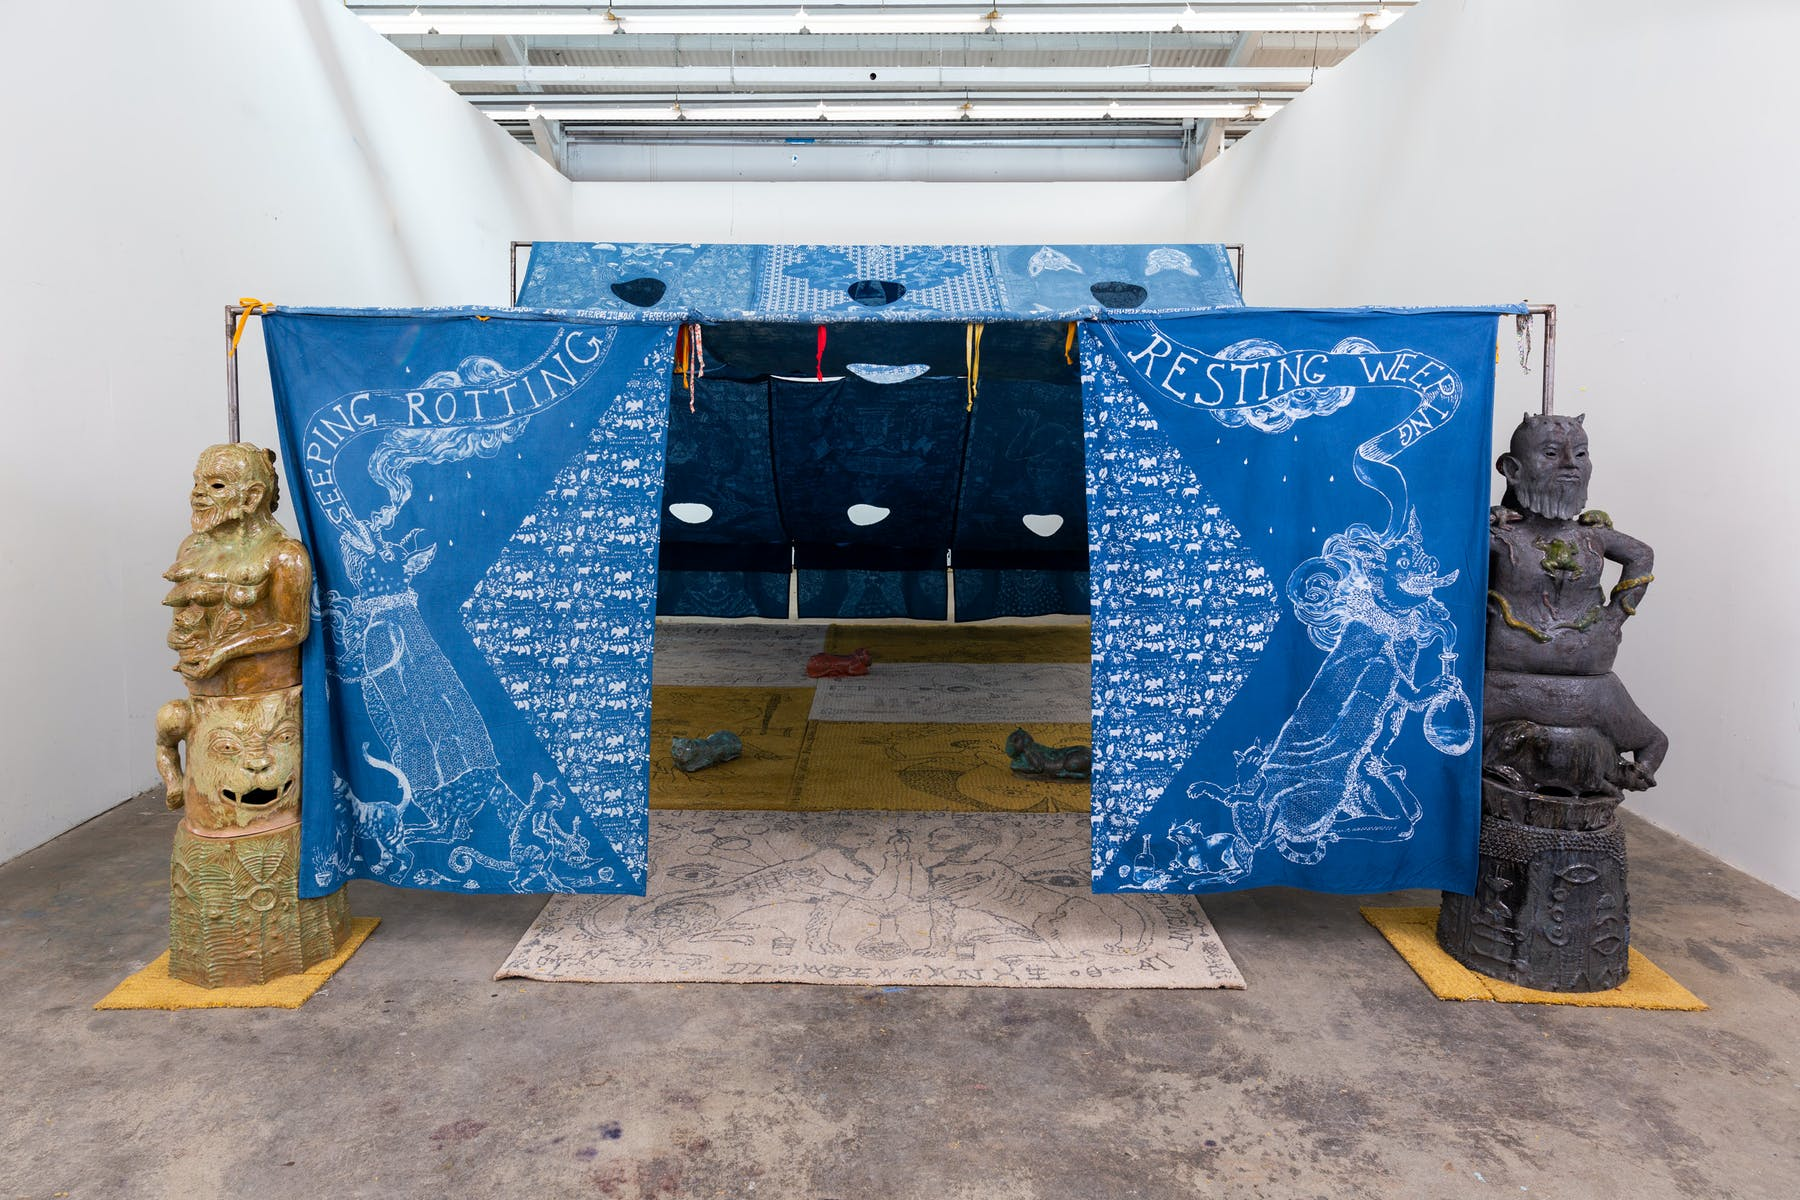 Image of tent made of blue patterned cloth in gallery with statues on either side